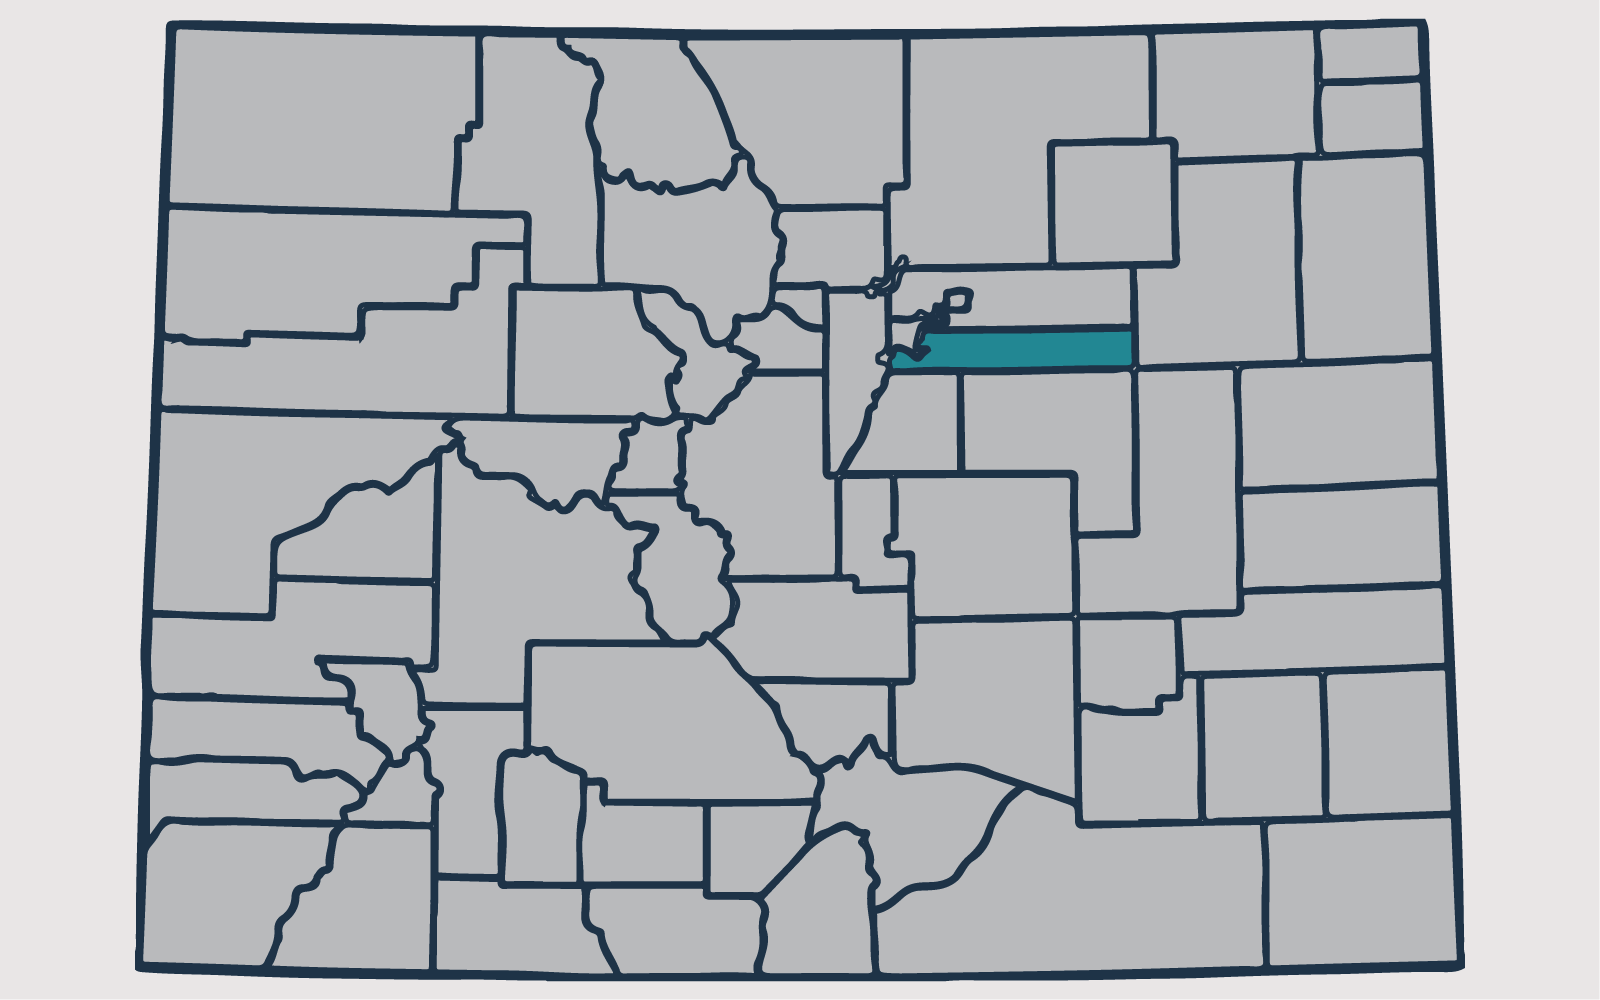 ARAPAHOE COUNTY, Colorado - Your health and satisfaction are important to us. We are located in Littleton, Colorado and are pleased to provide our professional, honest, and affordable radon testing and mitigation services to happy and satisfied customers all along the front range of our beautiful State of Colorado.